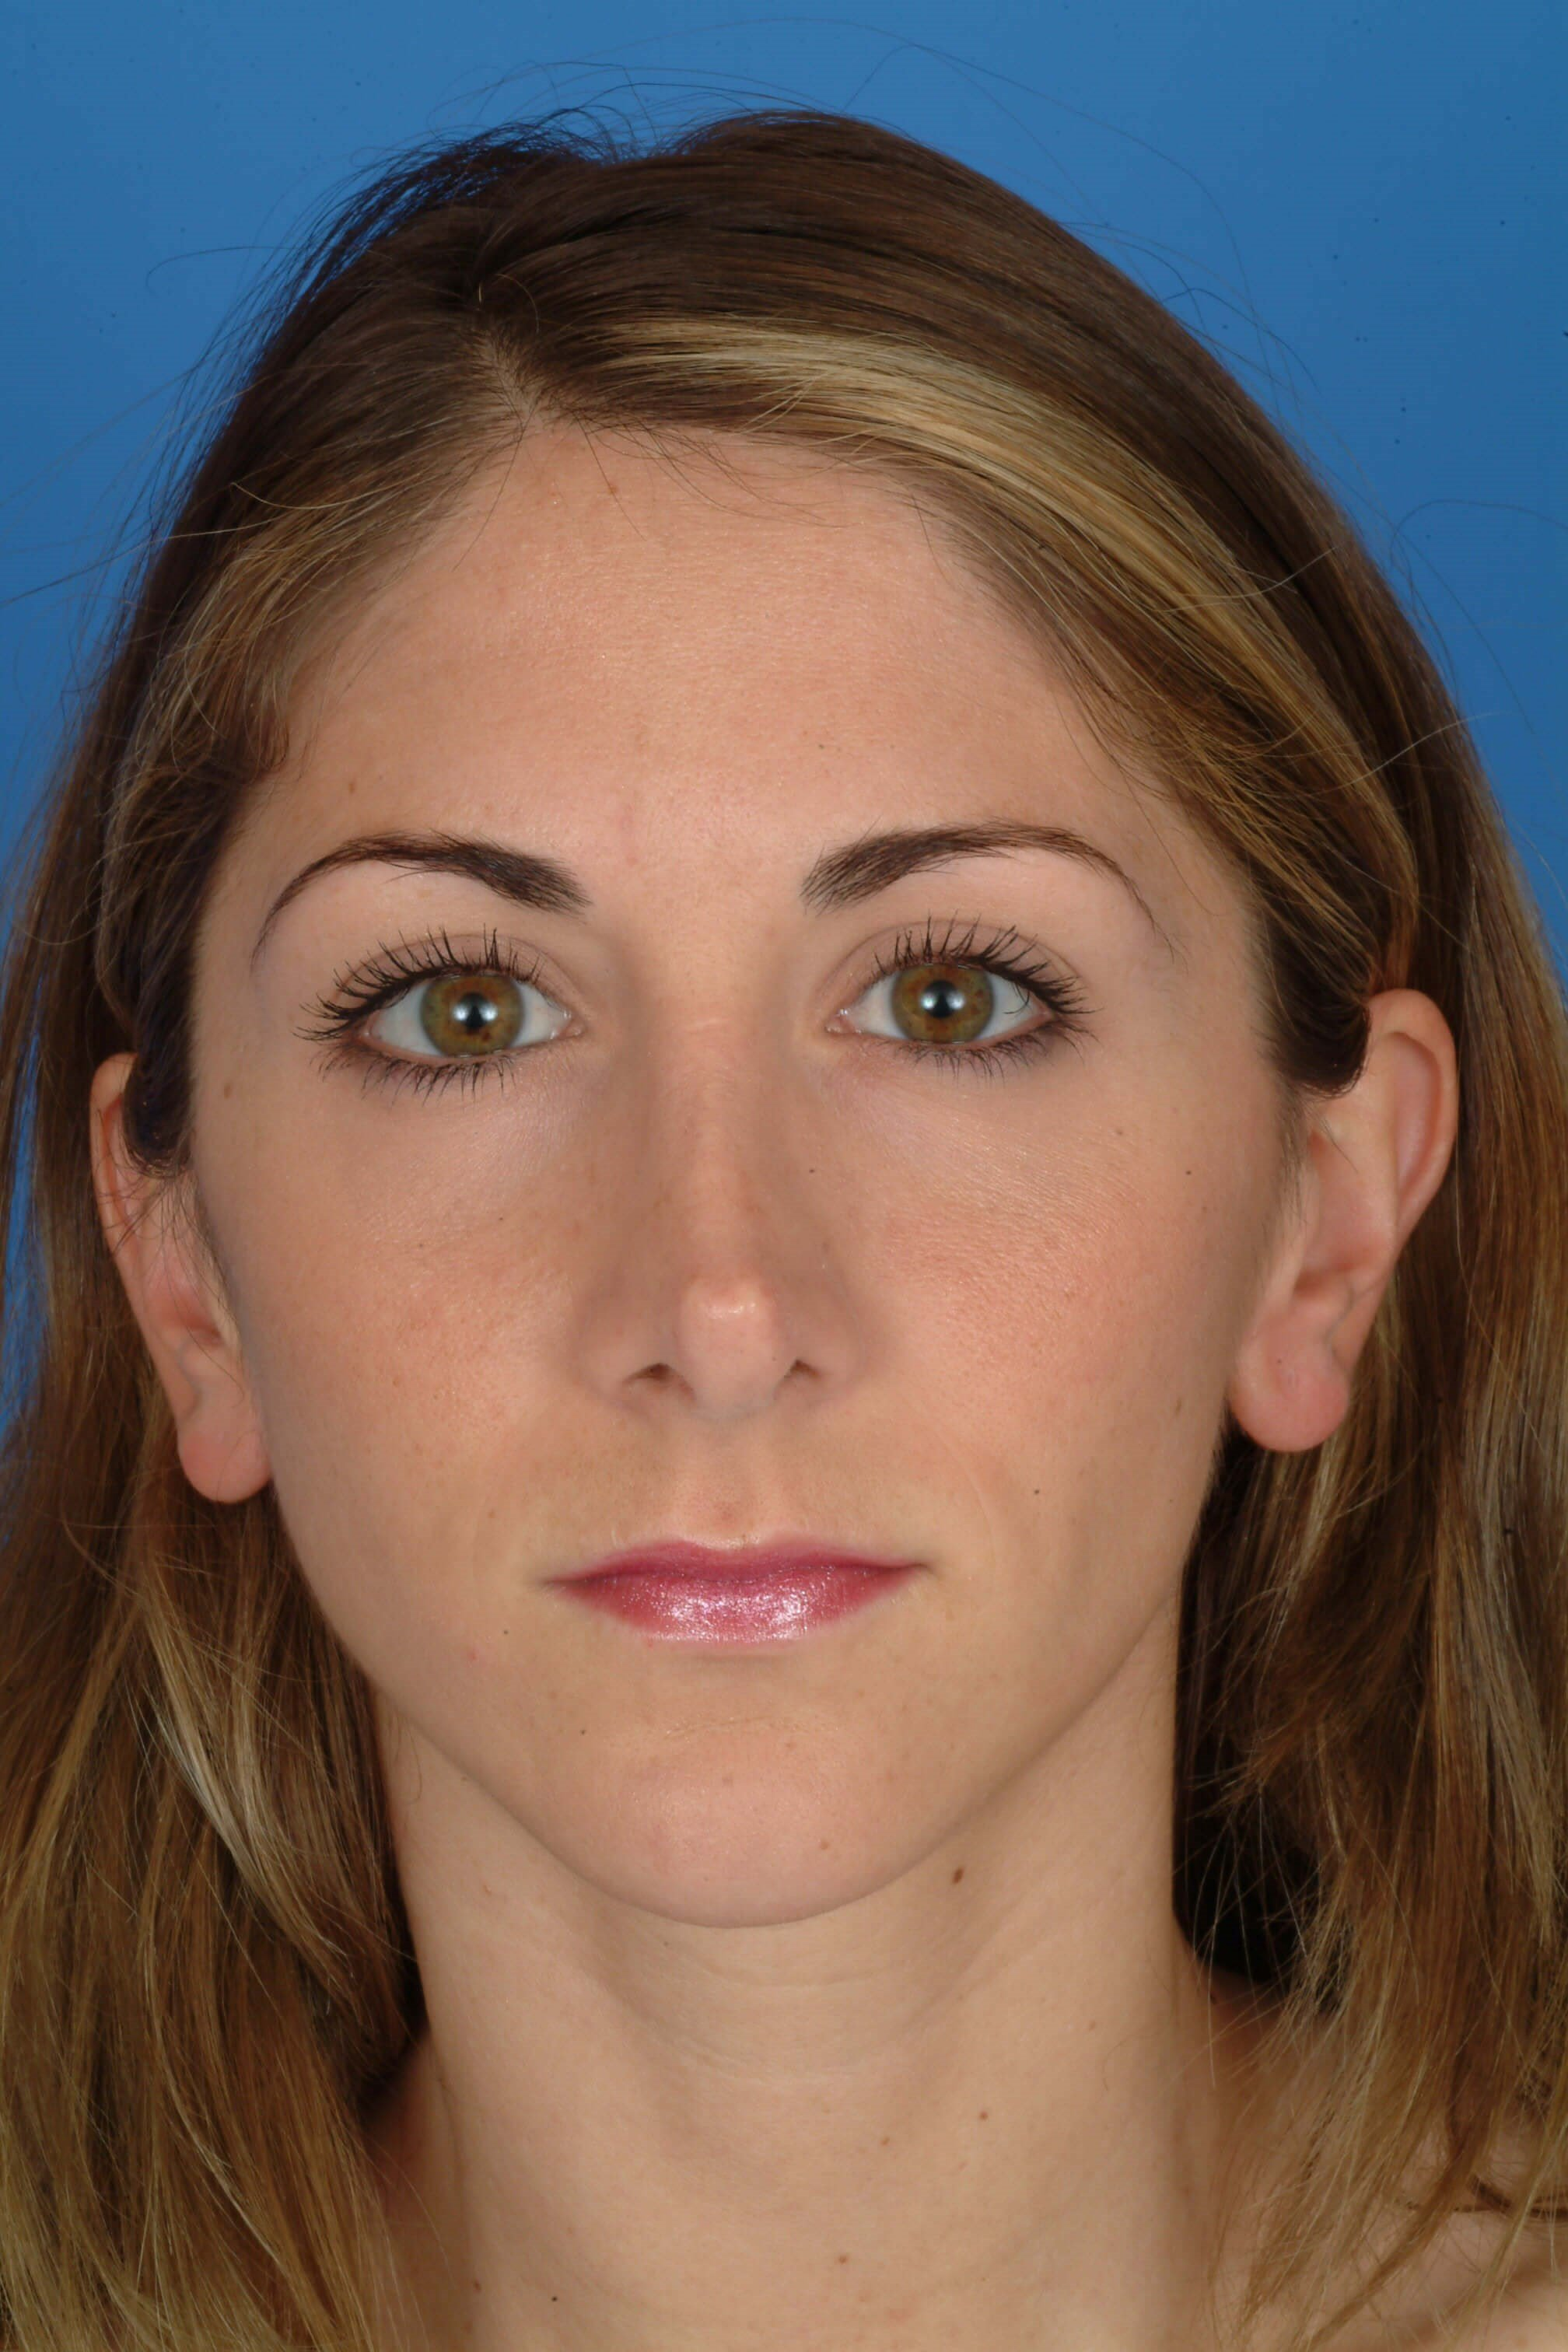 Front View Before: Revision Rhinoplasty